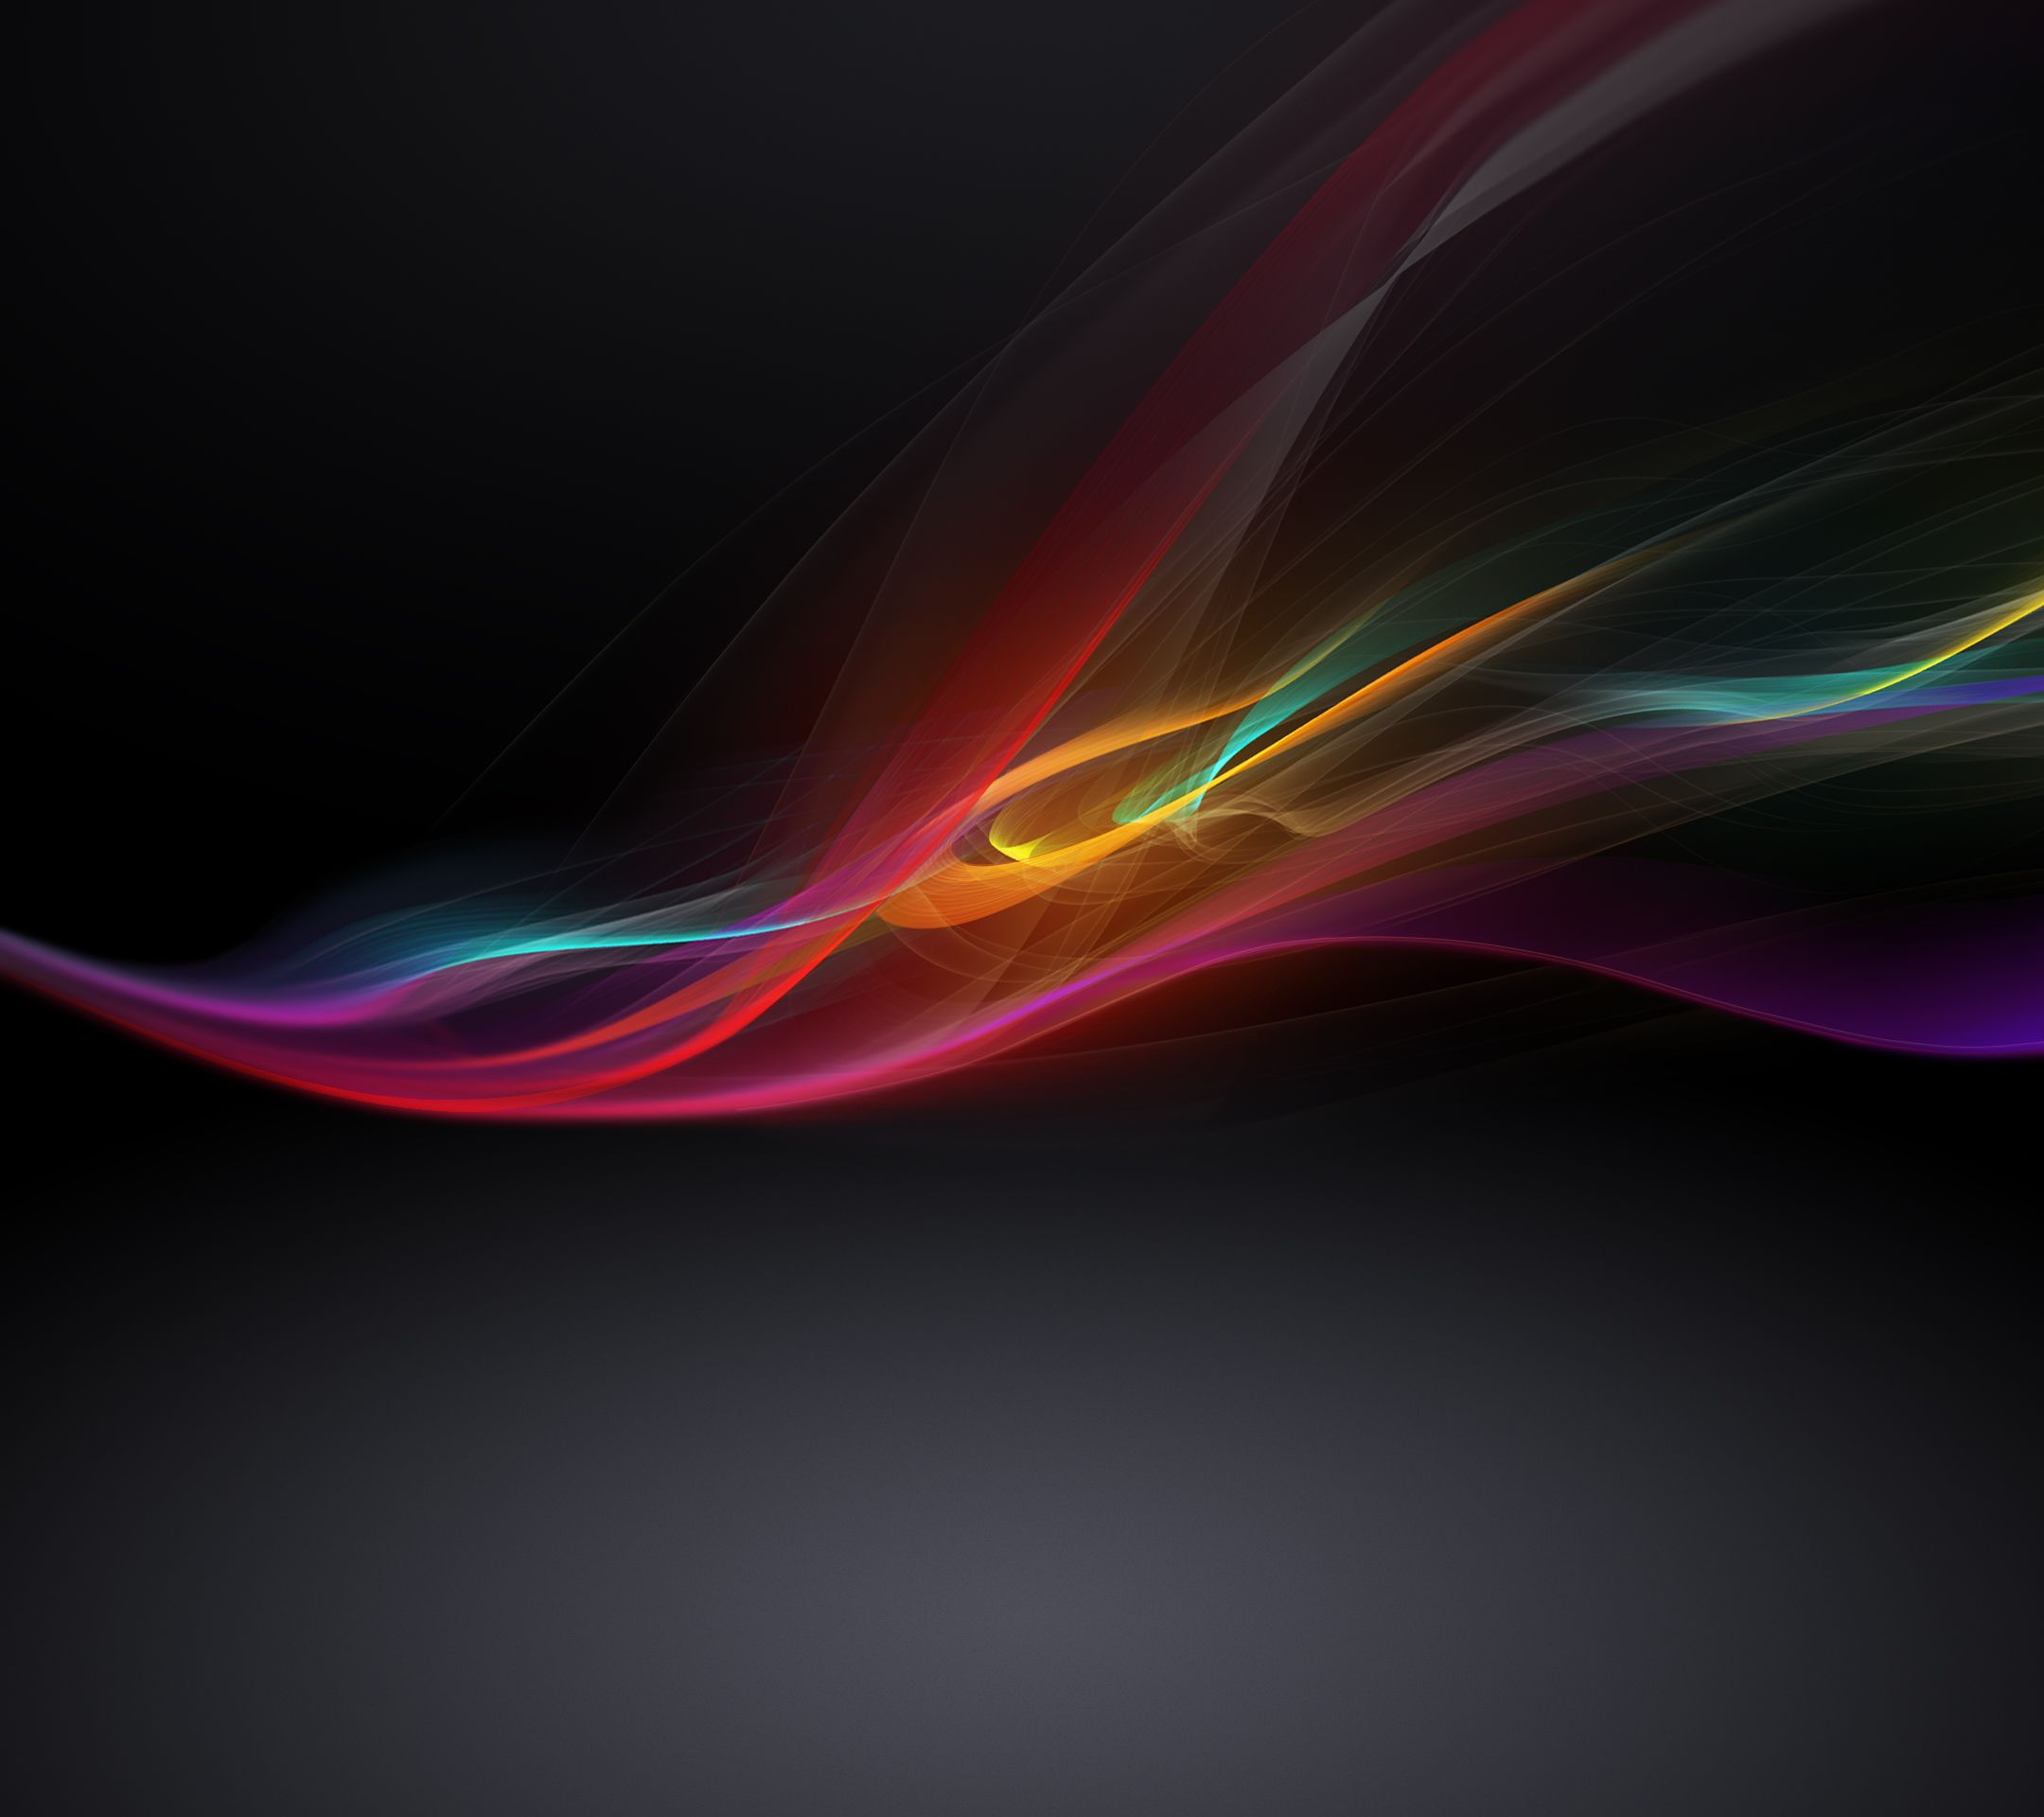 Sony Phone Wallpapers - Top Free Sony